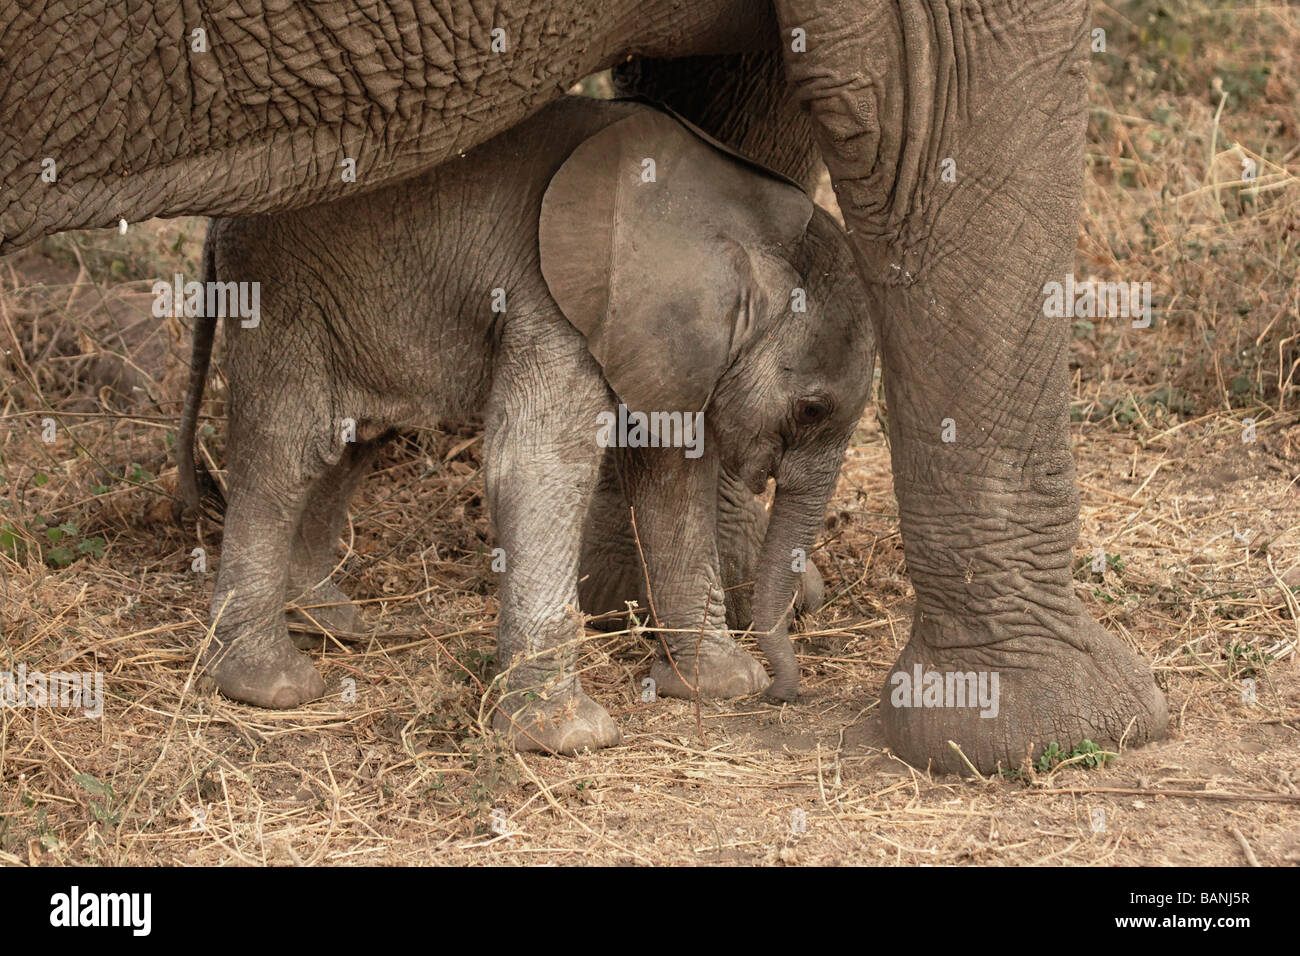 New born elephant calf with mother, baby is approximately only a few hours old, Lake Manyara National Park, Tanzania. Stock Photo